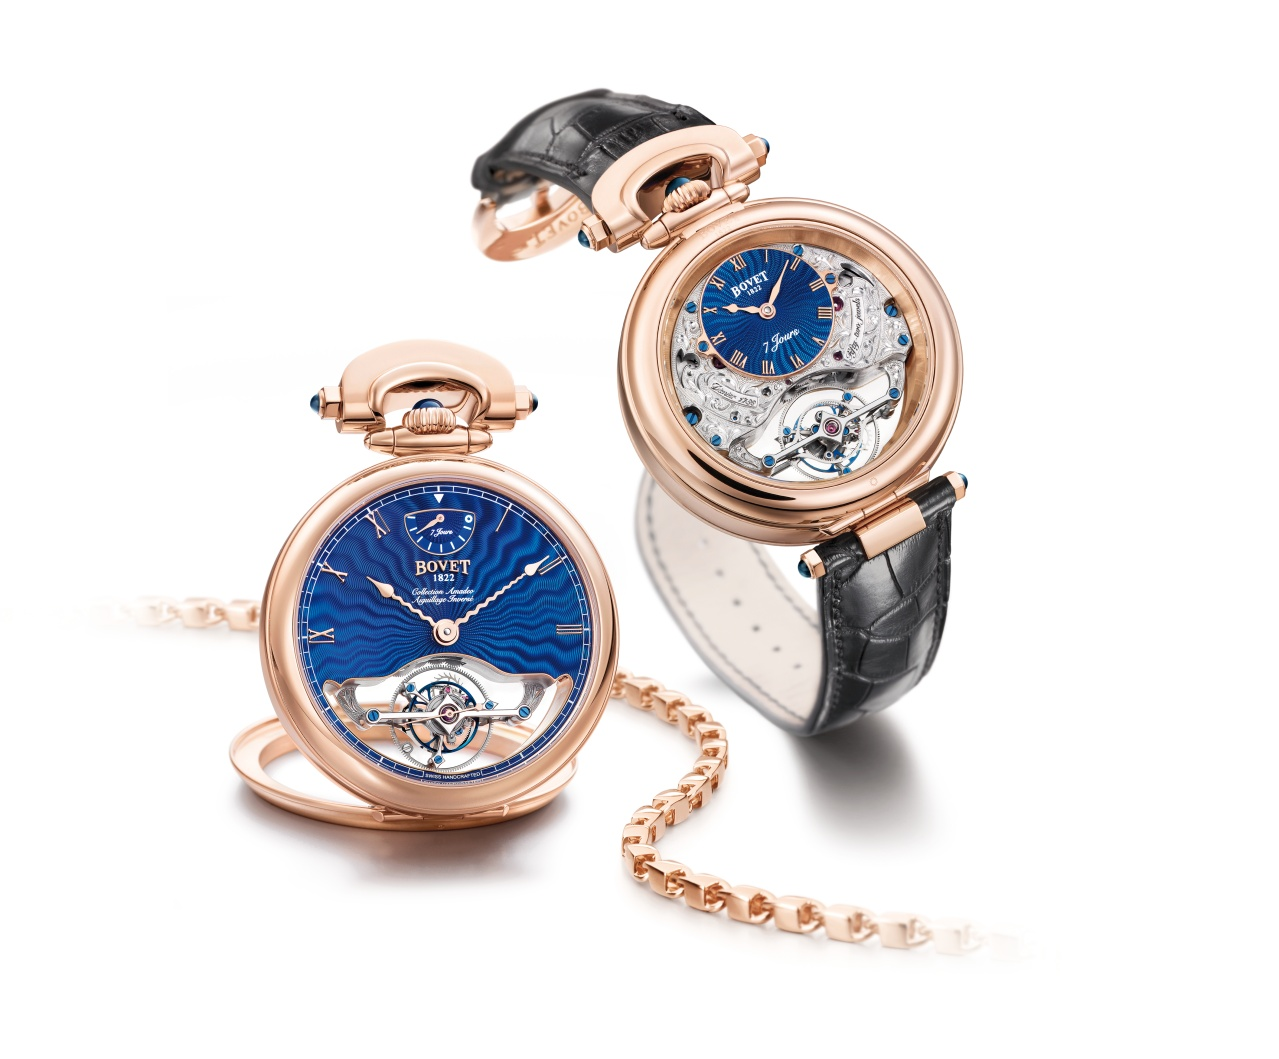 Bovet Watch   Amadeo Fleurier Grandes Complications   Ref. Nr.  AIF0T013-GO    Call 312-944-3100  | For Availability